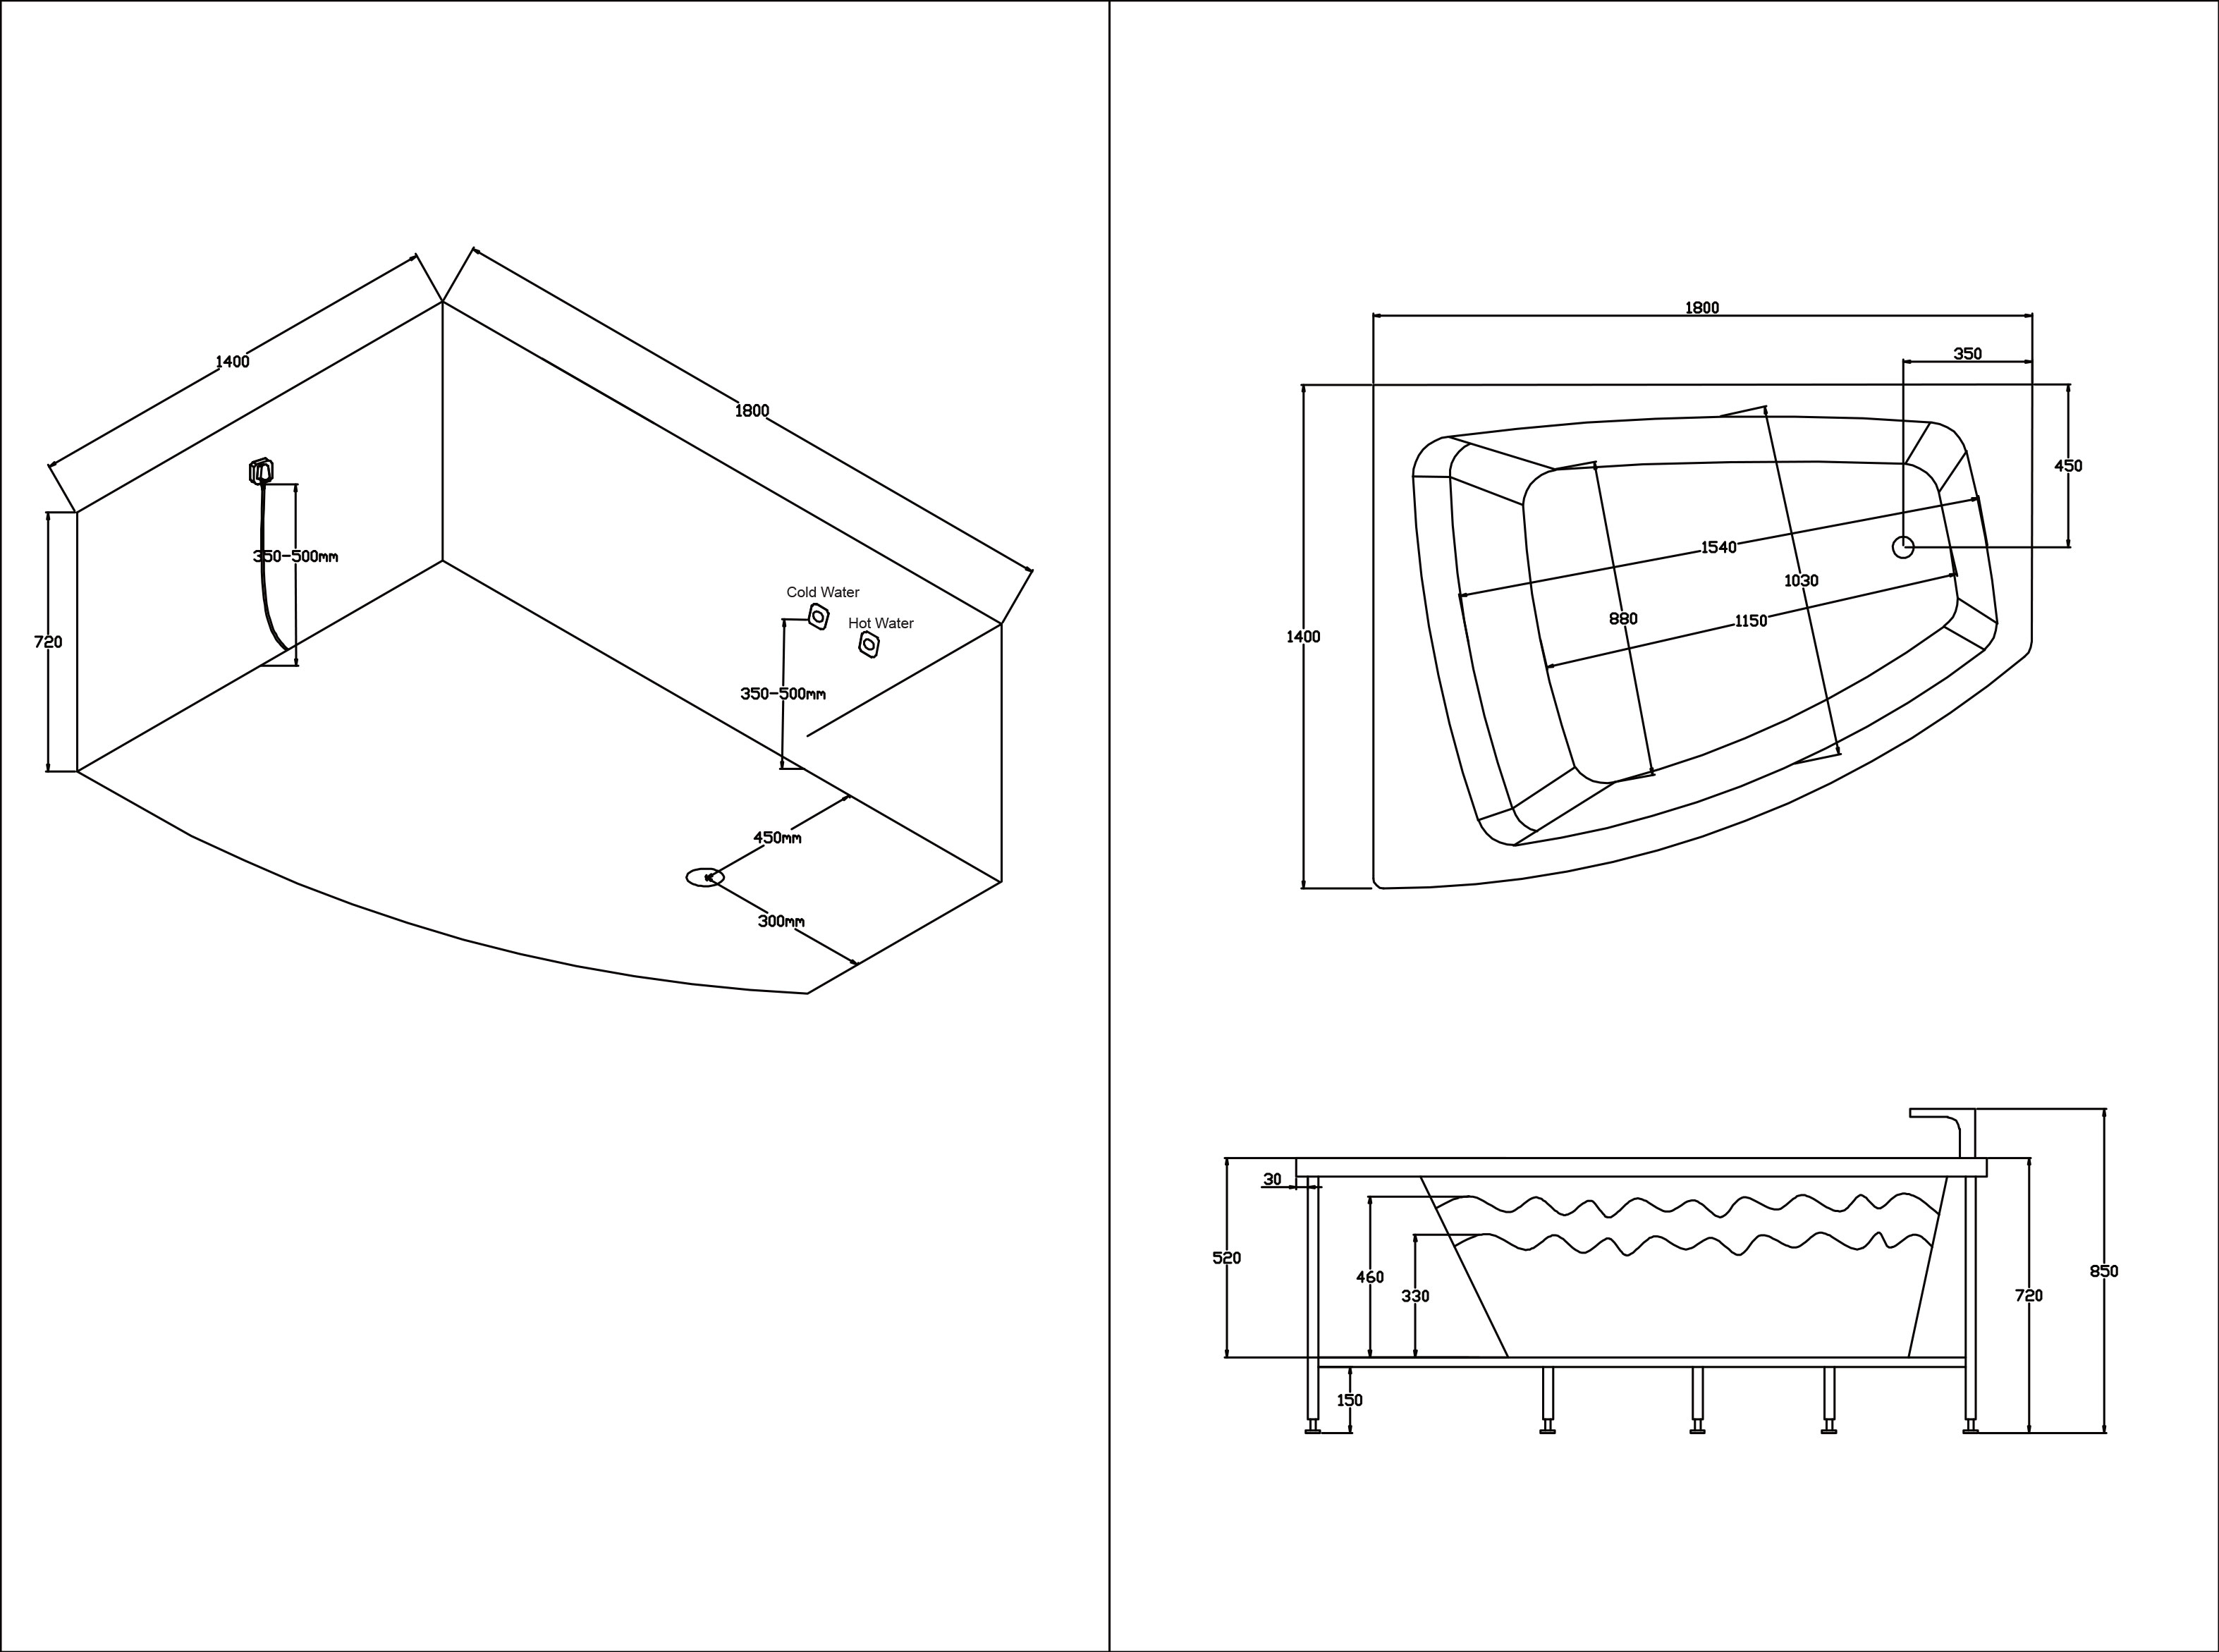 TECHNICAL DRAWING Schéma-balnéo-Caleca